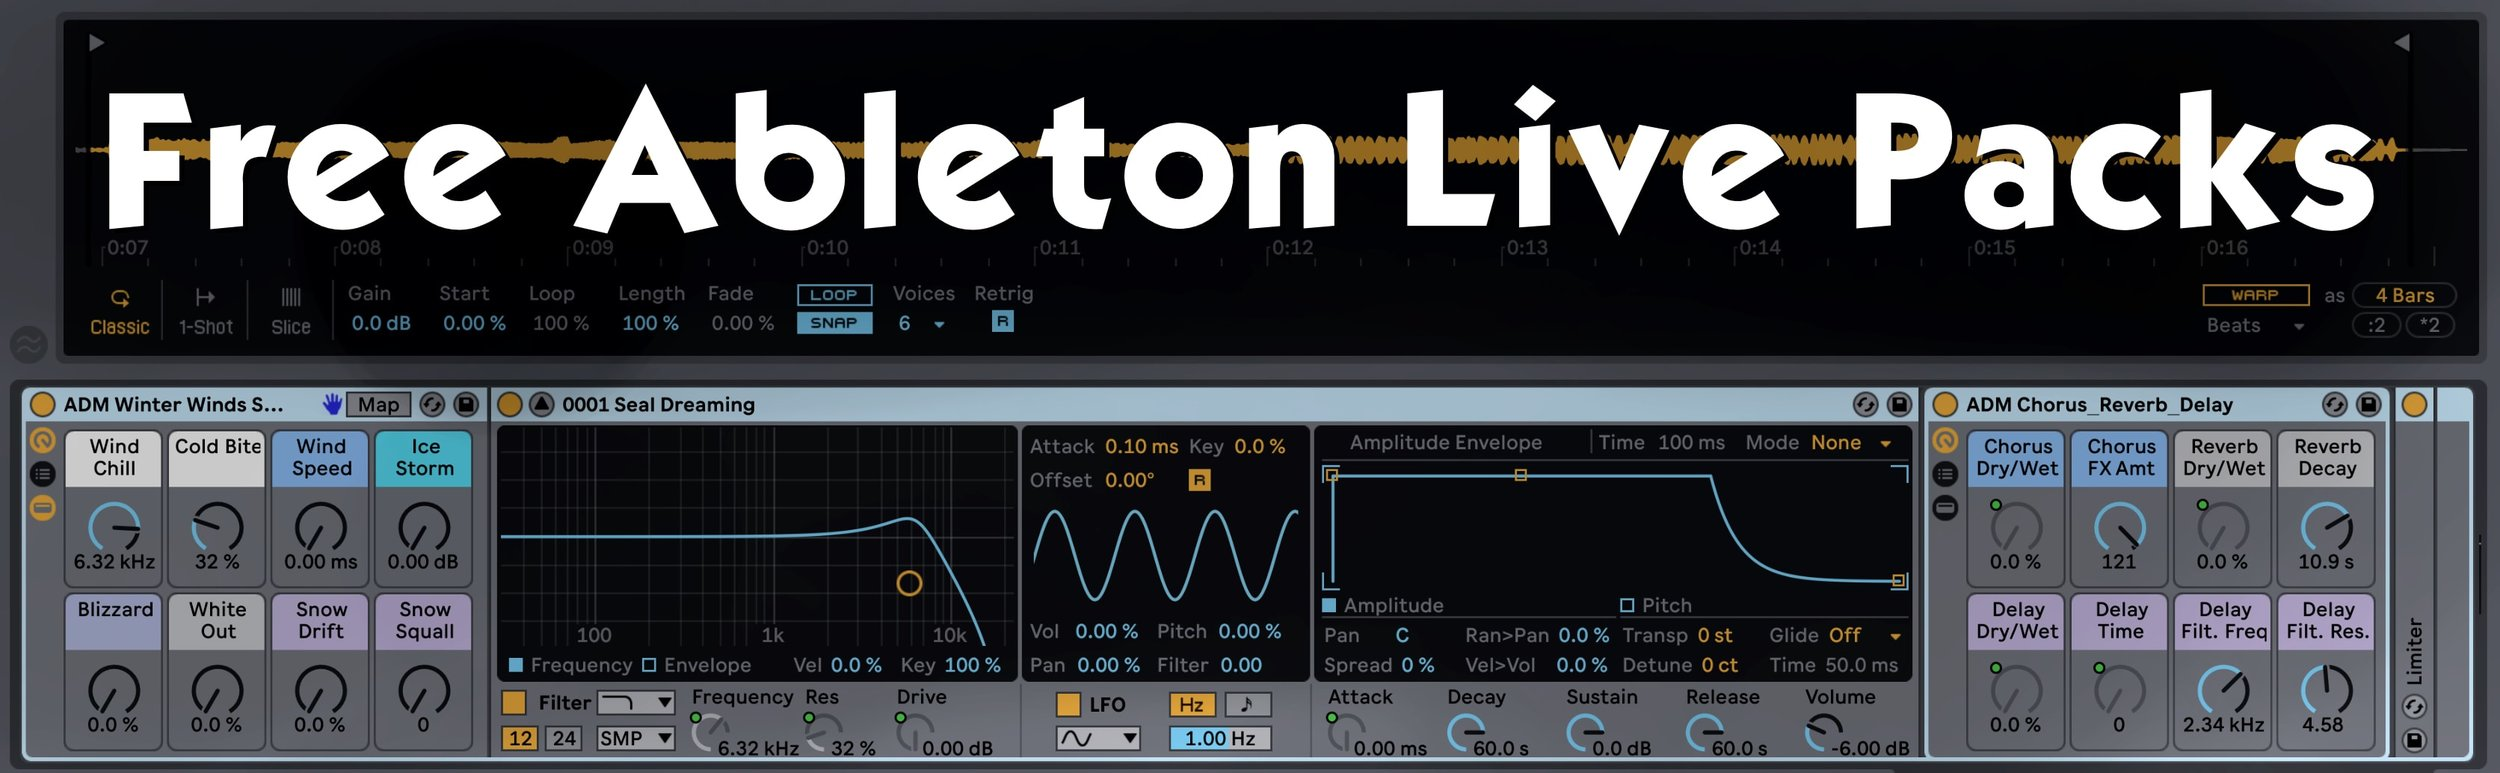 Free Ableton Live Packs — Brian Funk